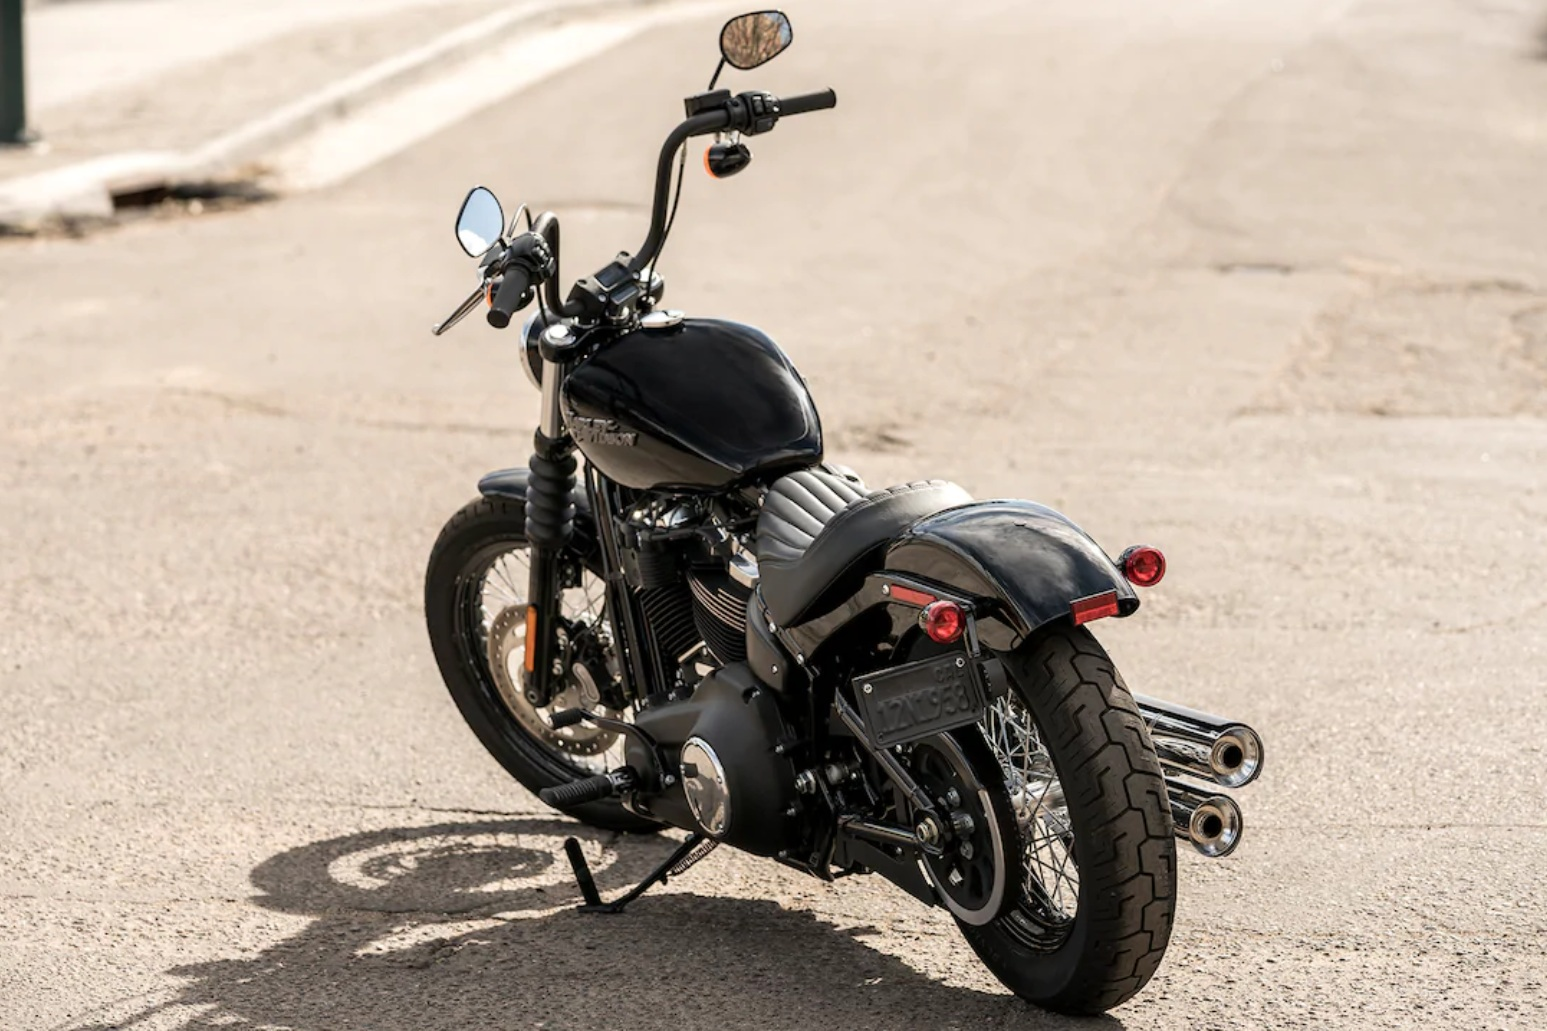 Street Bob® 107   The Street Bob® motorcycle gives you the two-fists-in-the-wind riding experience stripped down to the bare essence.